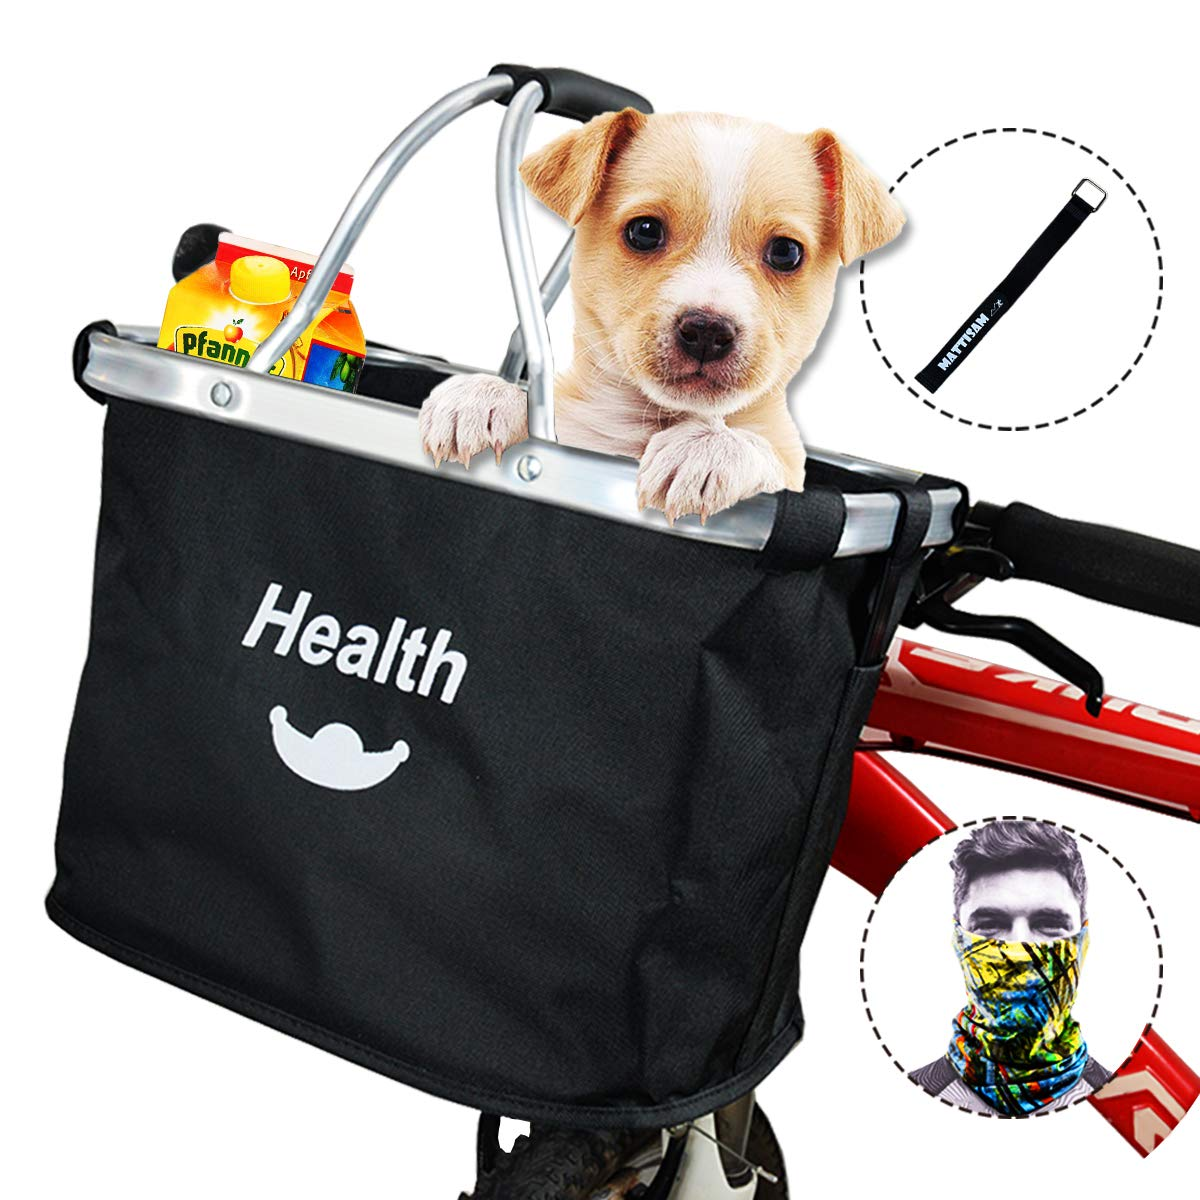 with Phone Pouch Removable 600D Water Resistant Oxford Cloth MattiSam Bicycle Basket 5KG Load Capacity Pet Cat Dog Carrier Quick Release Folding Bike Basket Drawstring Front Handlebar Bag